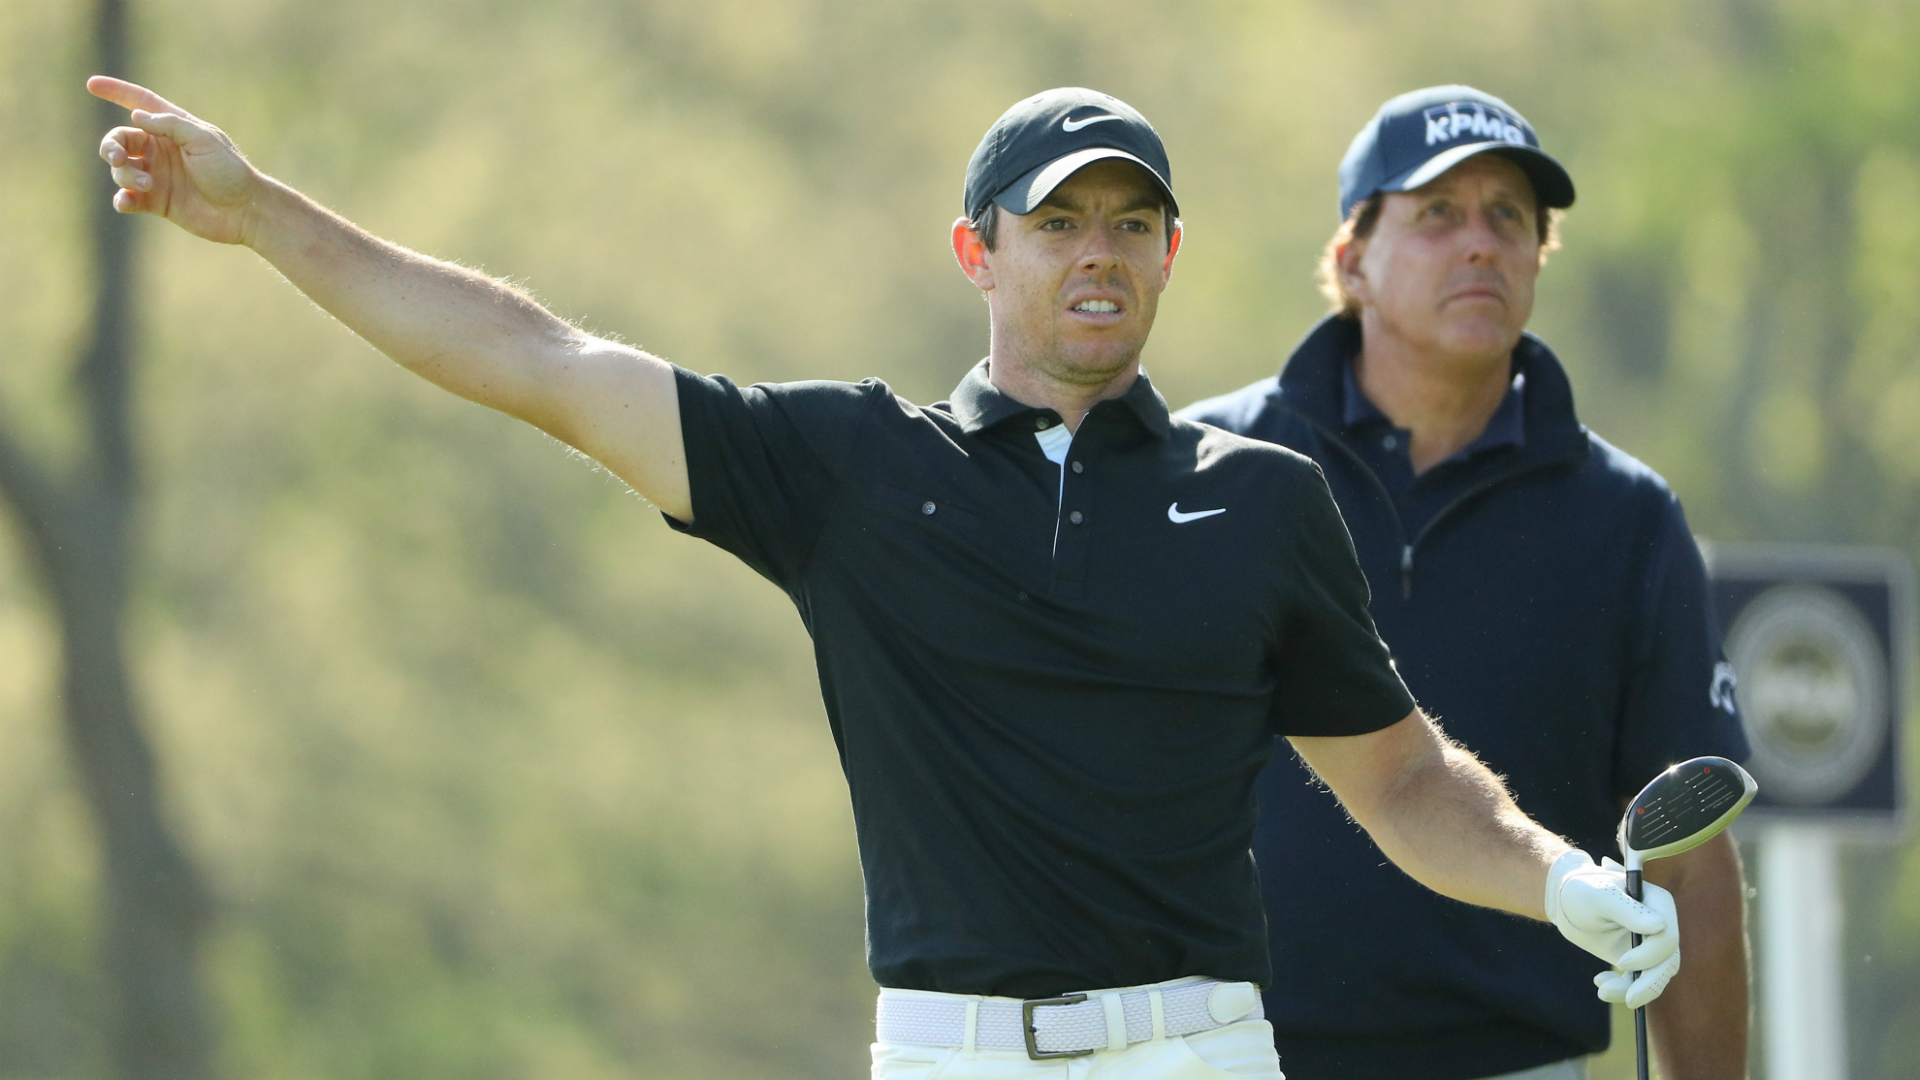 McIlroy facing cut threat after nightmare start to round two at Bethpage